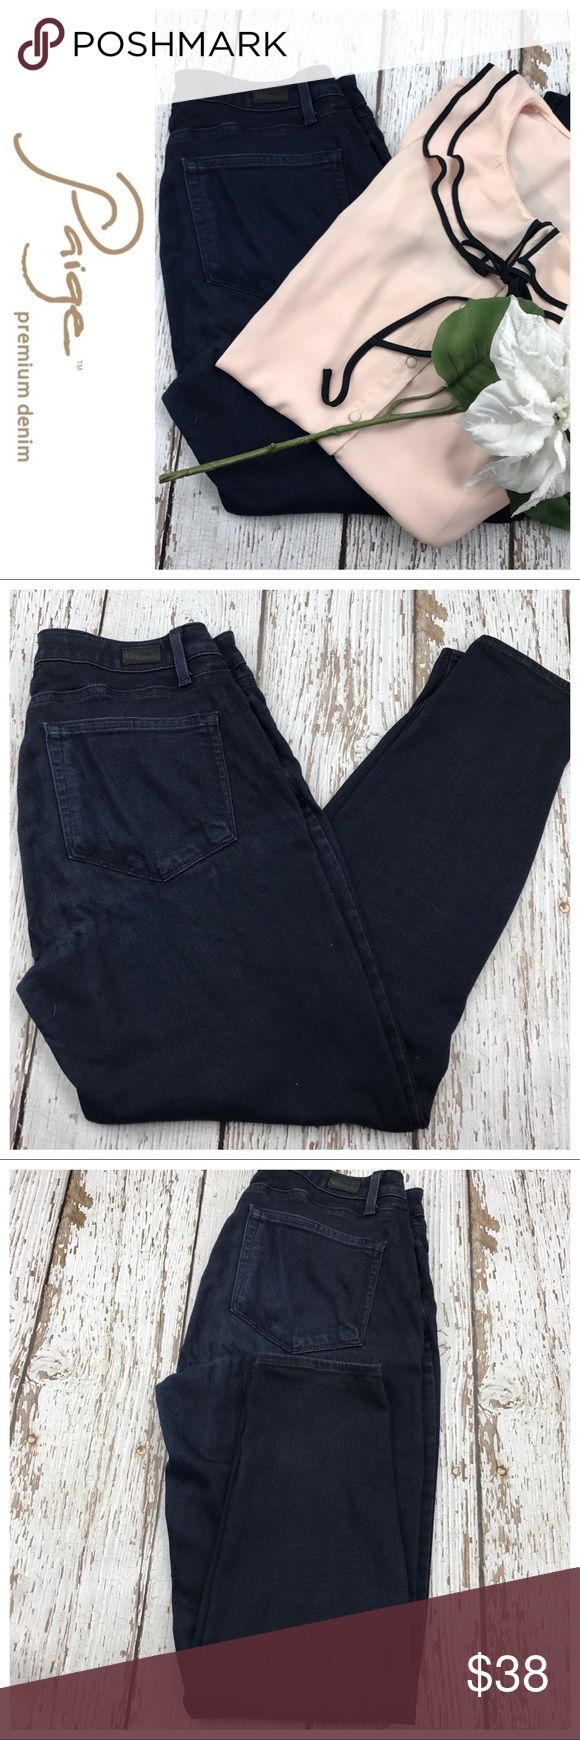 "💕SALE💕Paige Verdugo Ankle Premium Denim Jeans Fabulous 💕Paige Verdugo Ankle Premium Denim Jeans 27 1/2"" Inseam Perfect for Boots These Jeans are the Absolute most comfortable you'll ever have. They are super soft, stretch like a legging Paige Jeans Jeans"